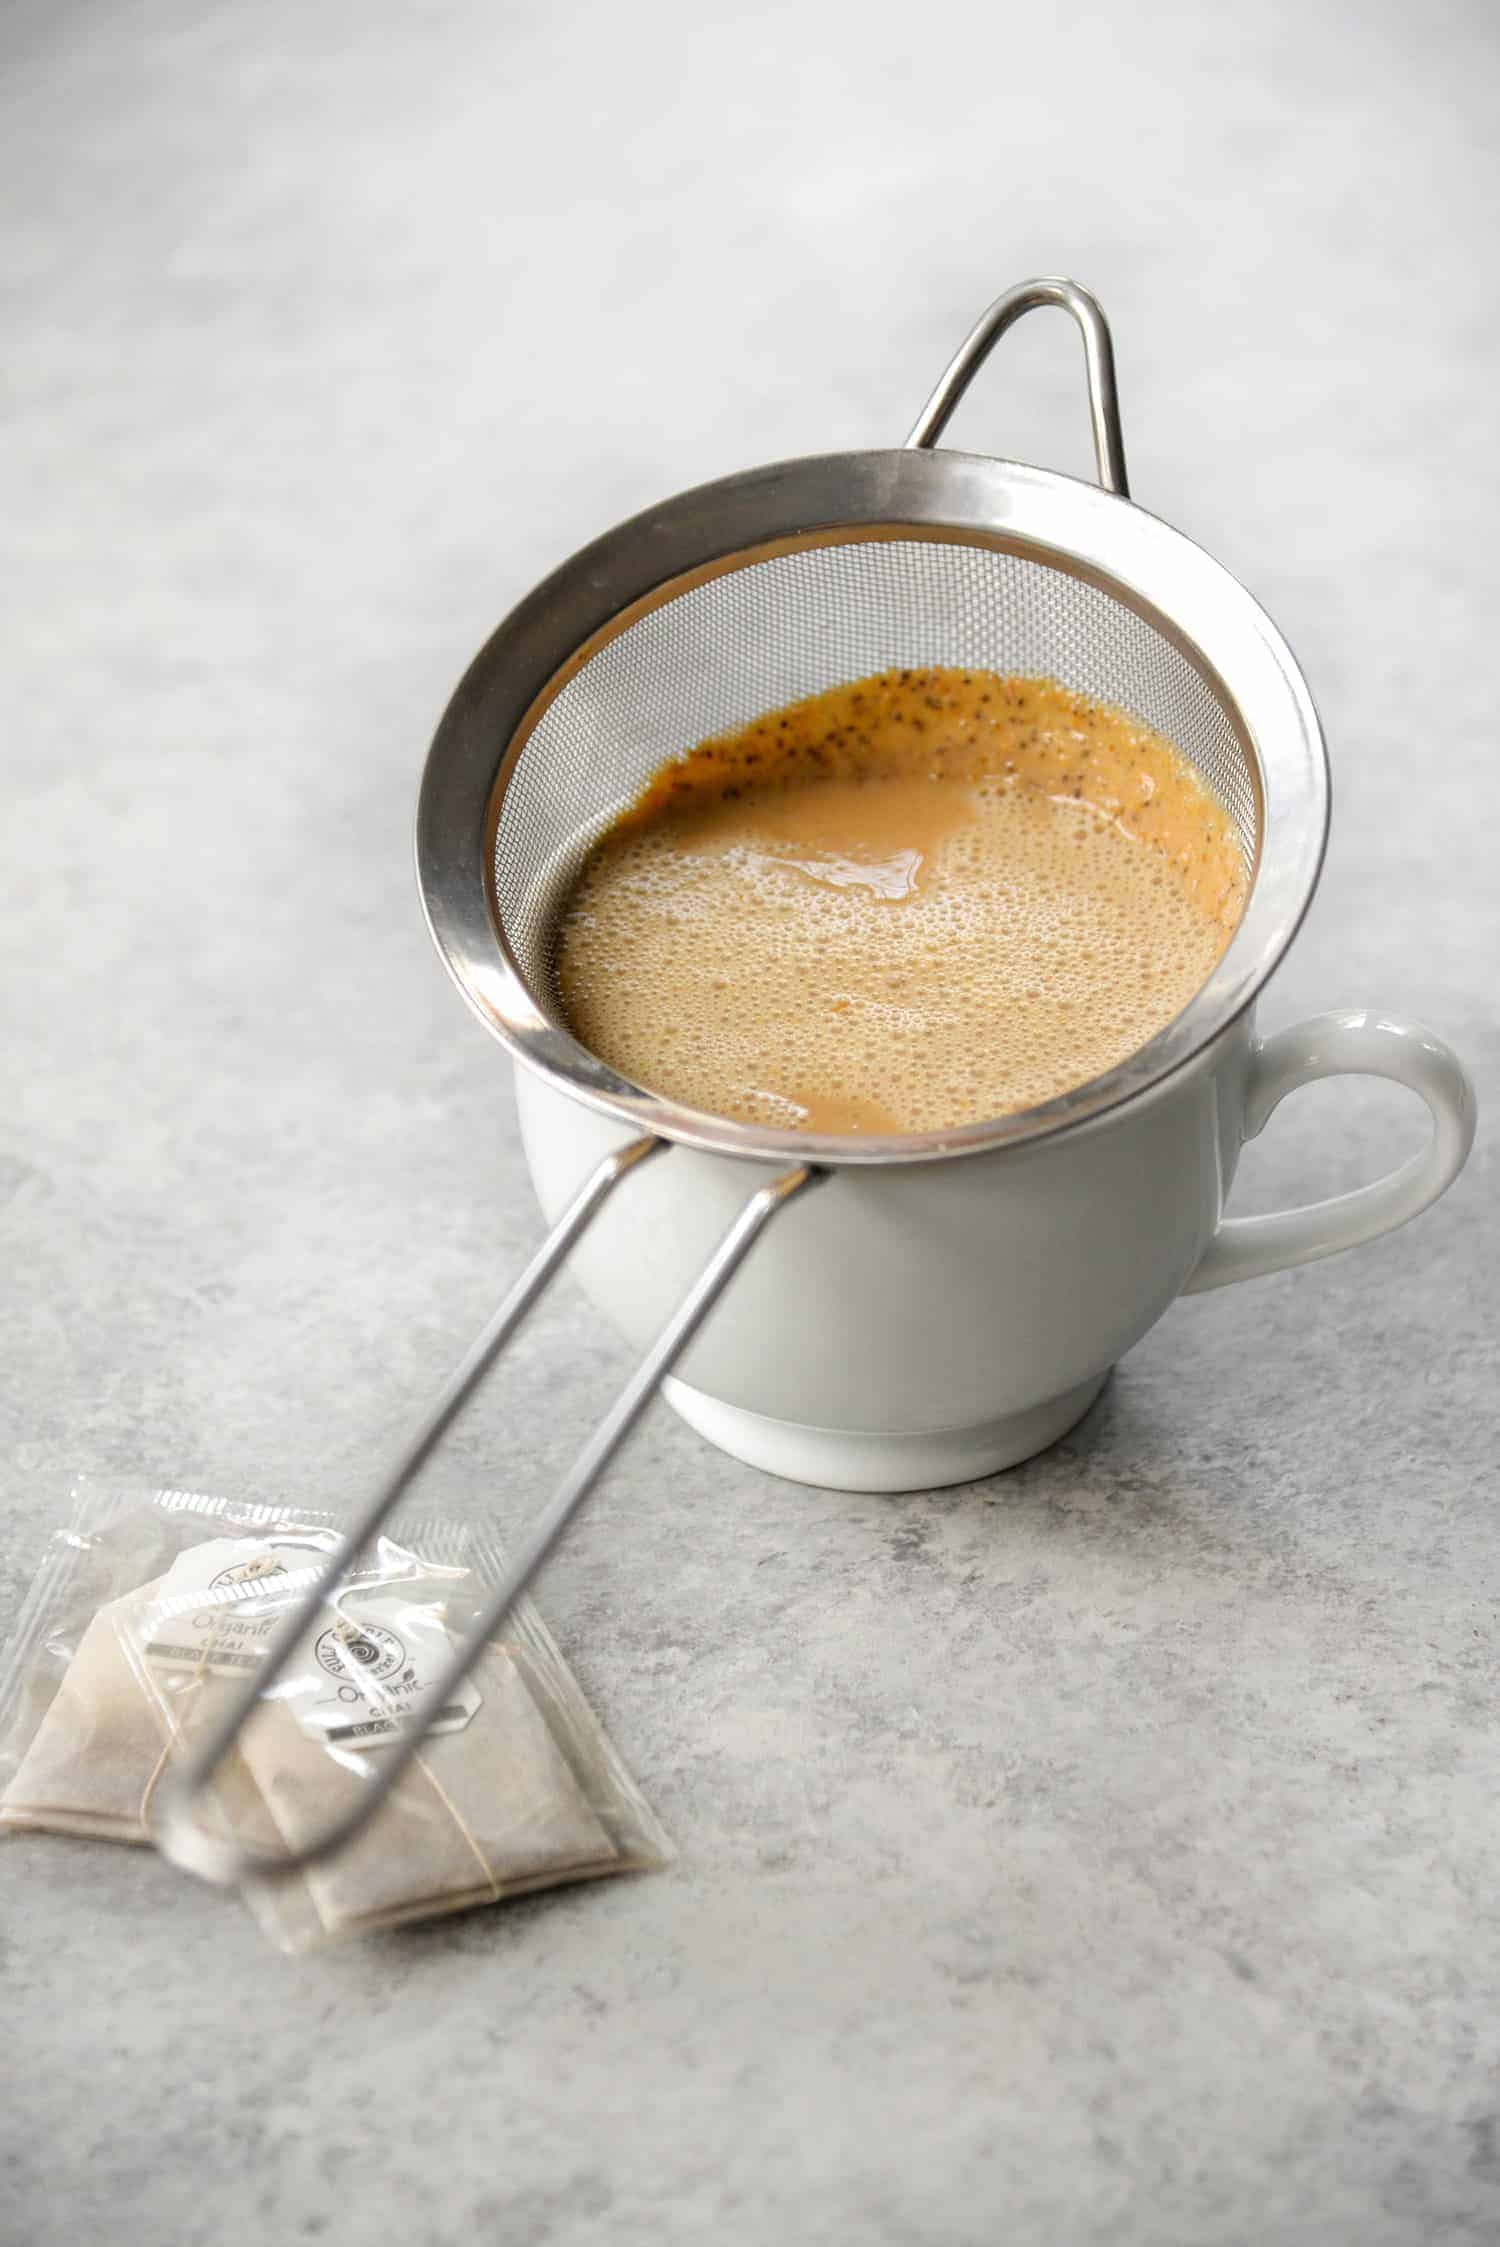 Pumpkin Chai Latte for One! If you love pumpkin chai lattes, you'll want to save this healthier, cleaner version. Made with chai tea, pumpkin puree, almond milk and spice. Vegan & Gluten-Free | www.delishknowledge.com